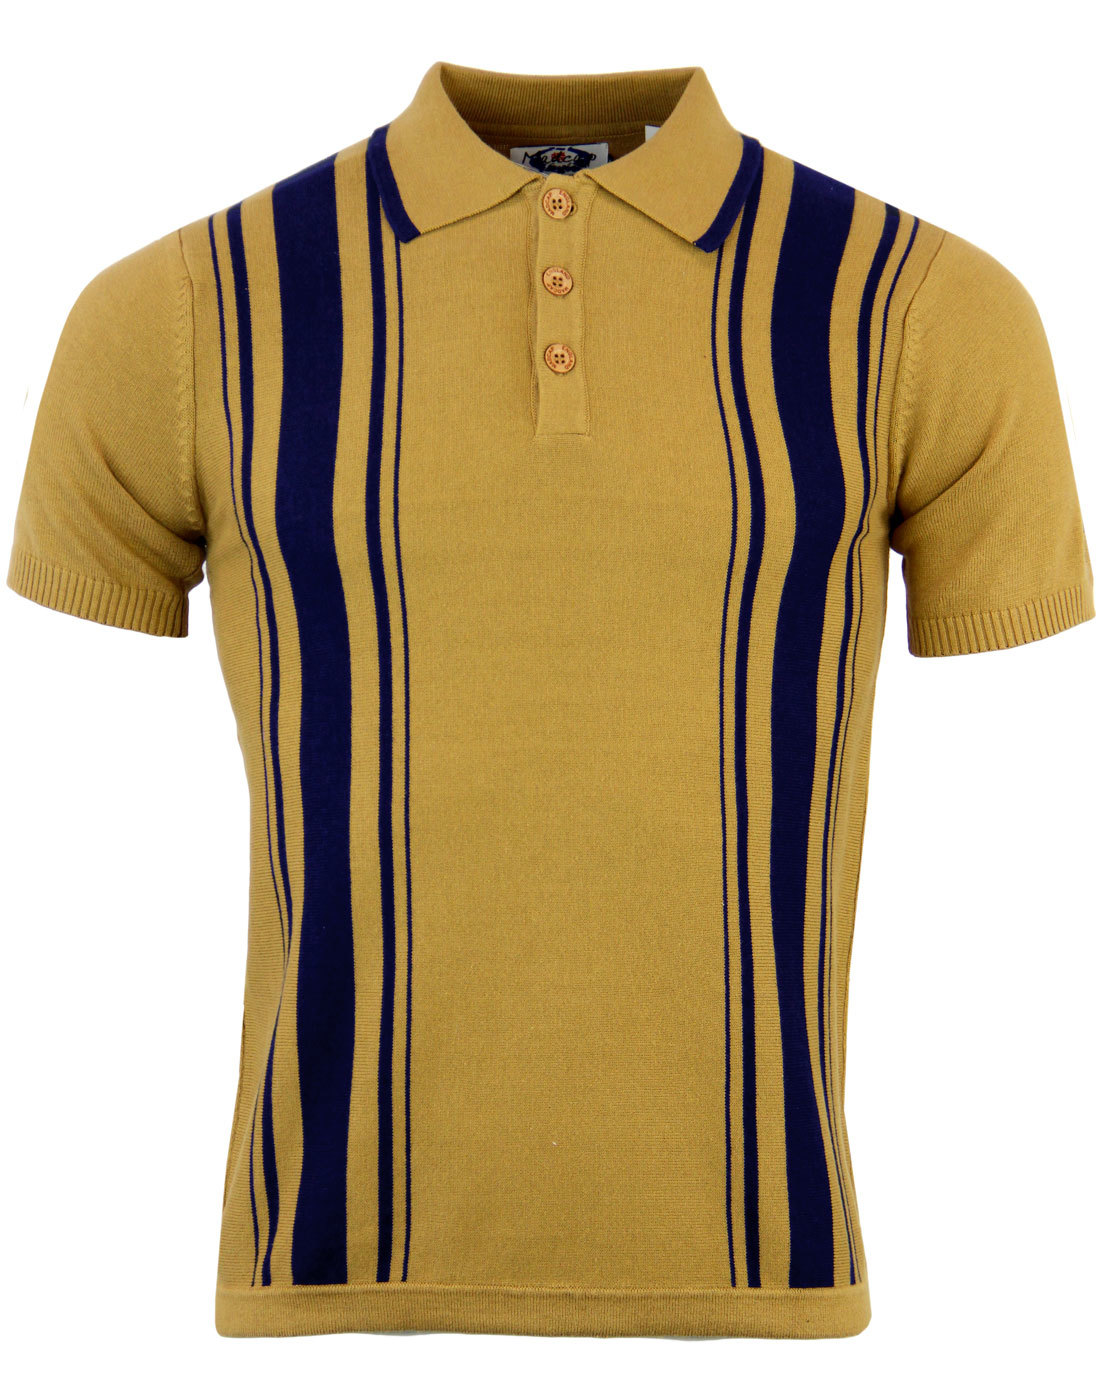 MADCAP ENGLAND Aftermath Retro 1960s Mod Knitted Stripe Polo Top